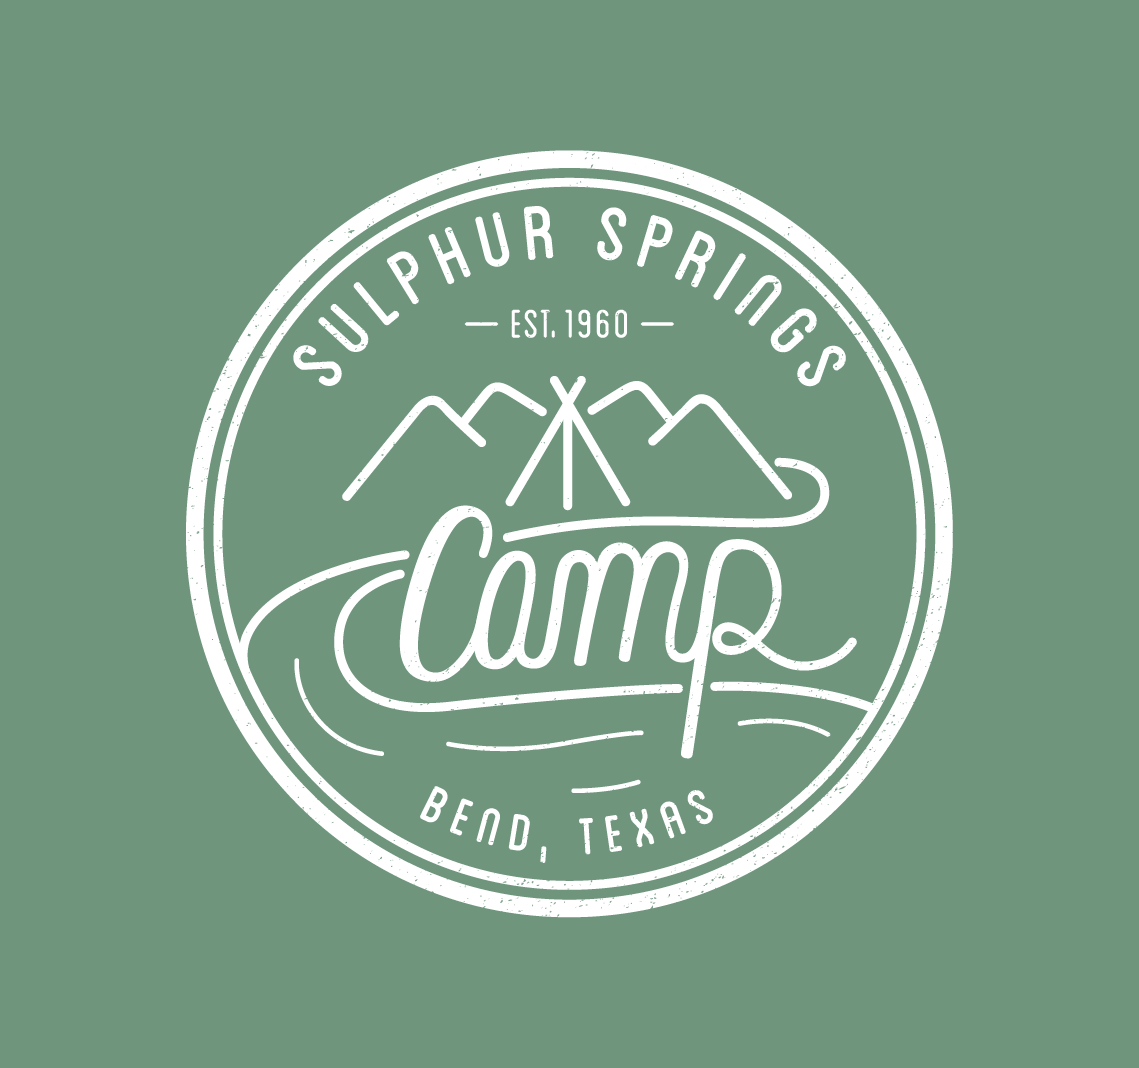 Sulphur Springs Camp | Logo & Merch Design